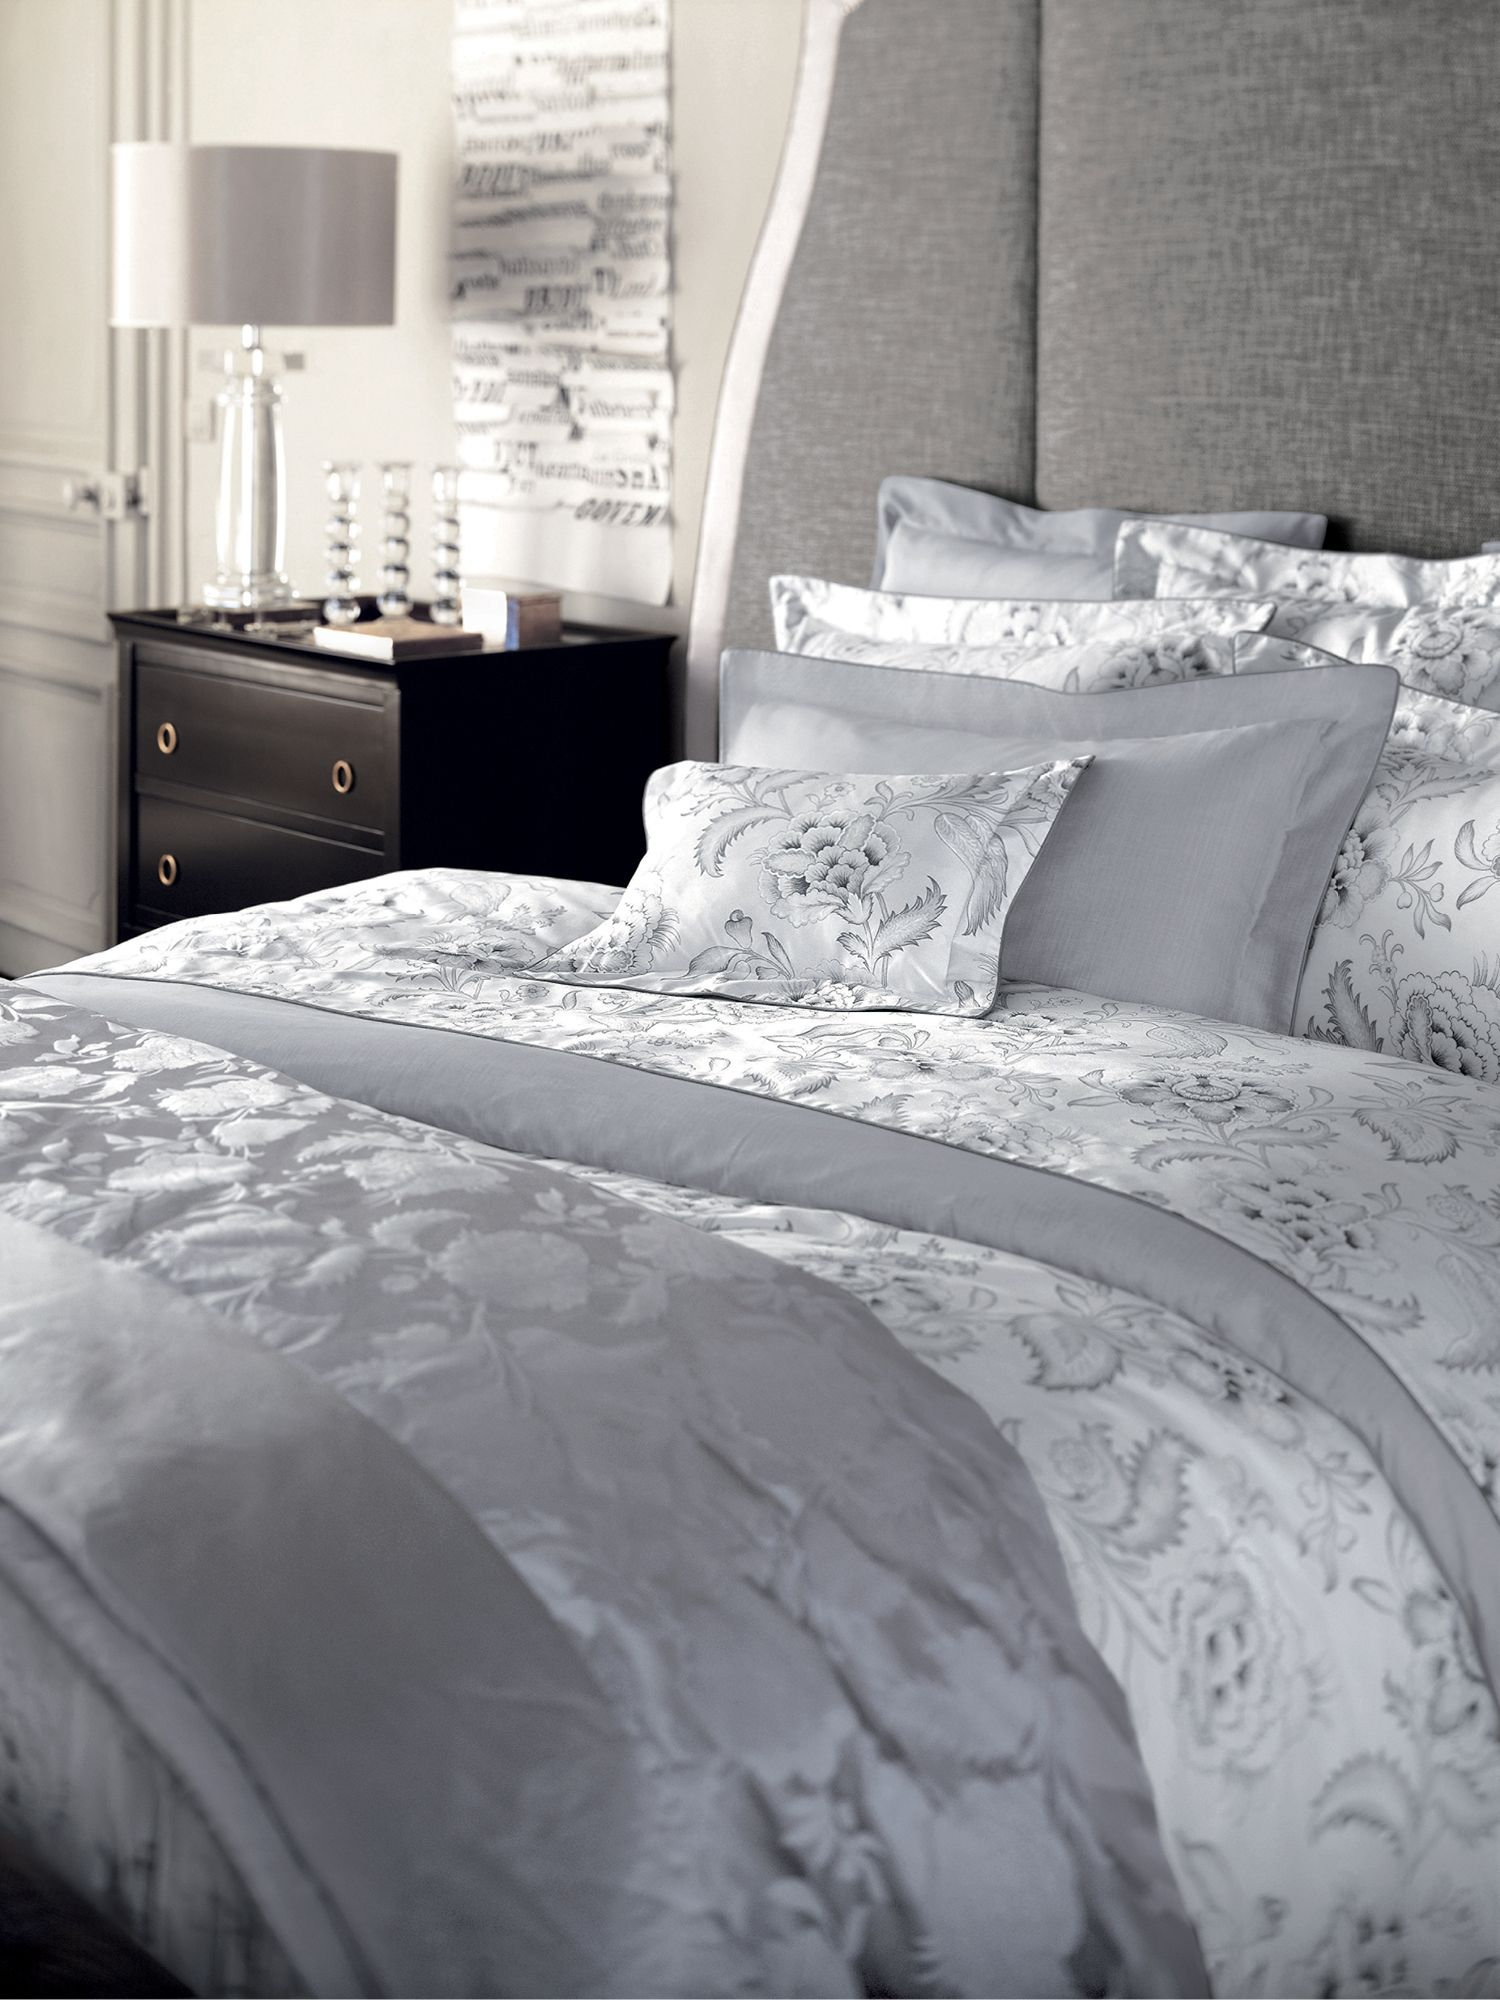 Yves delorme passe present bedding sale compare uk for Yves delorme